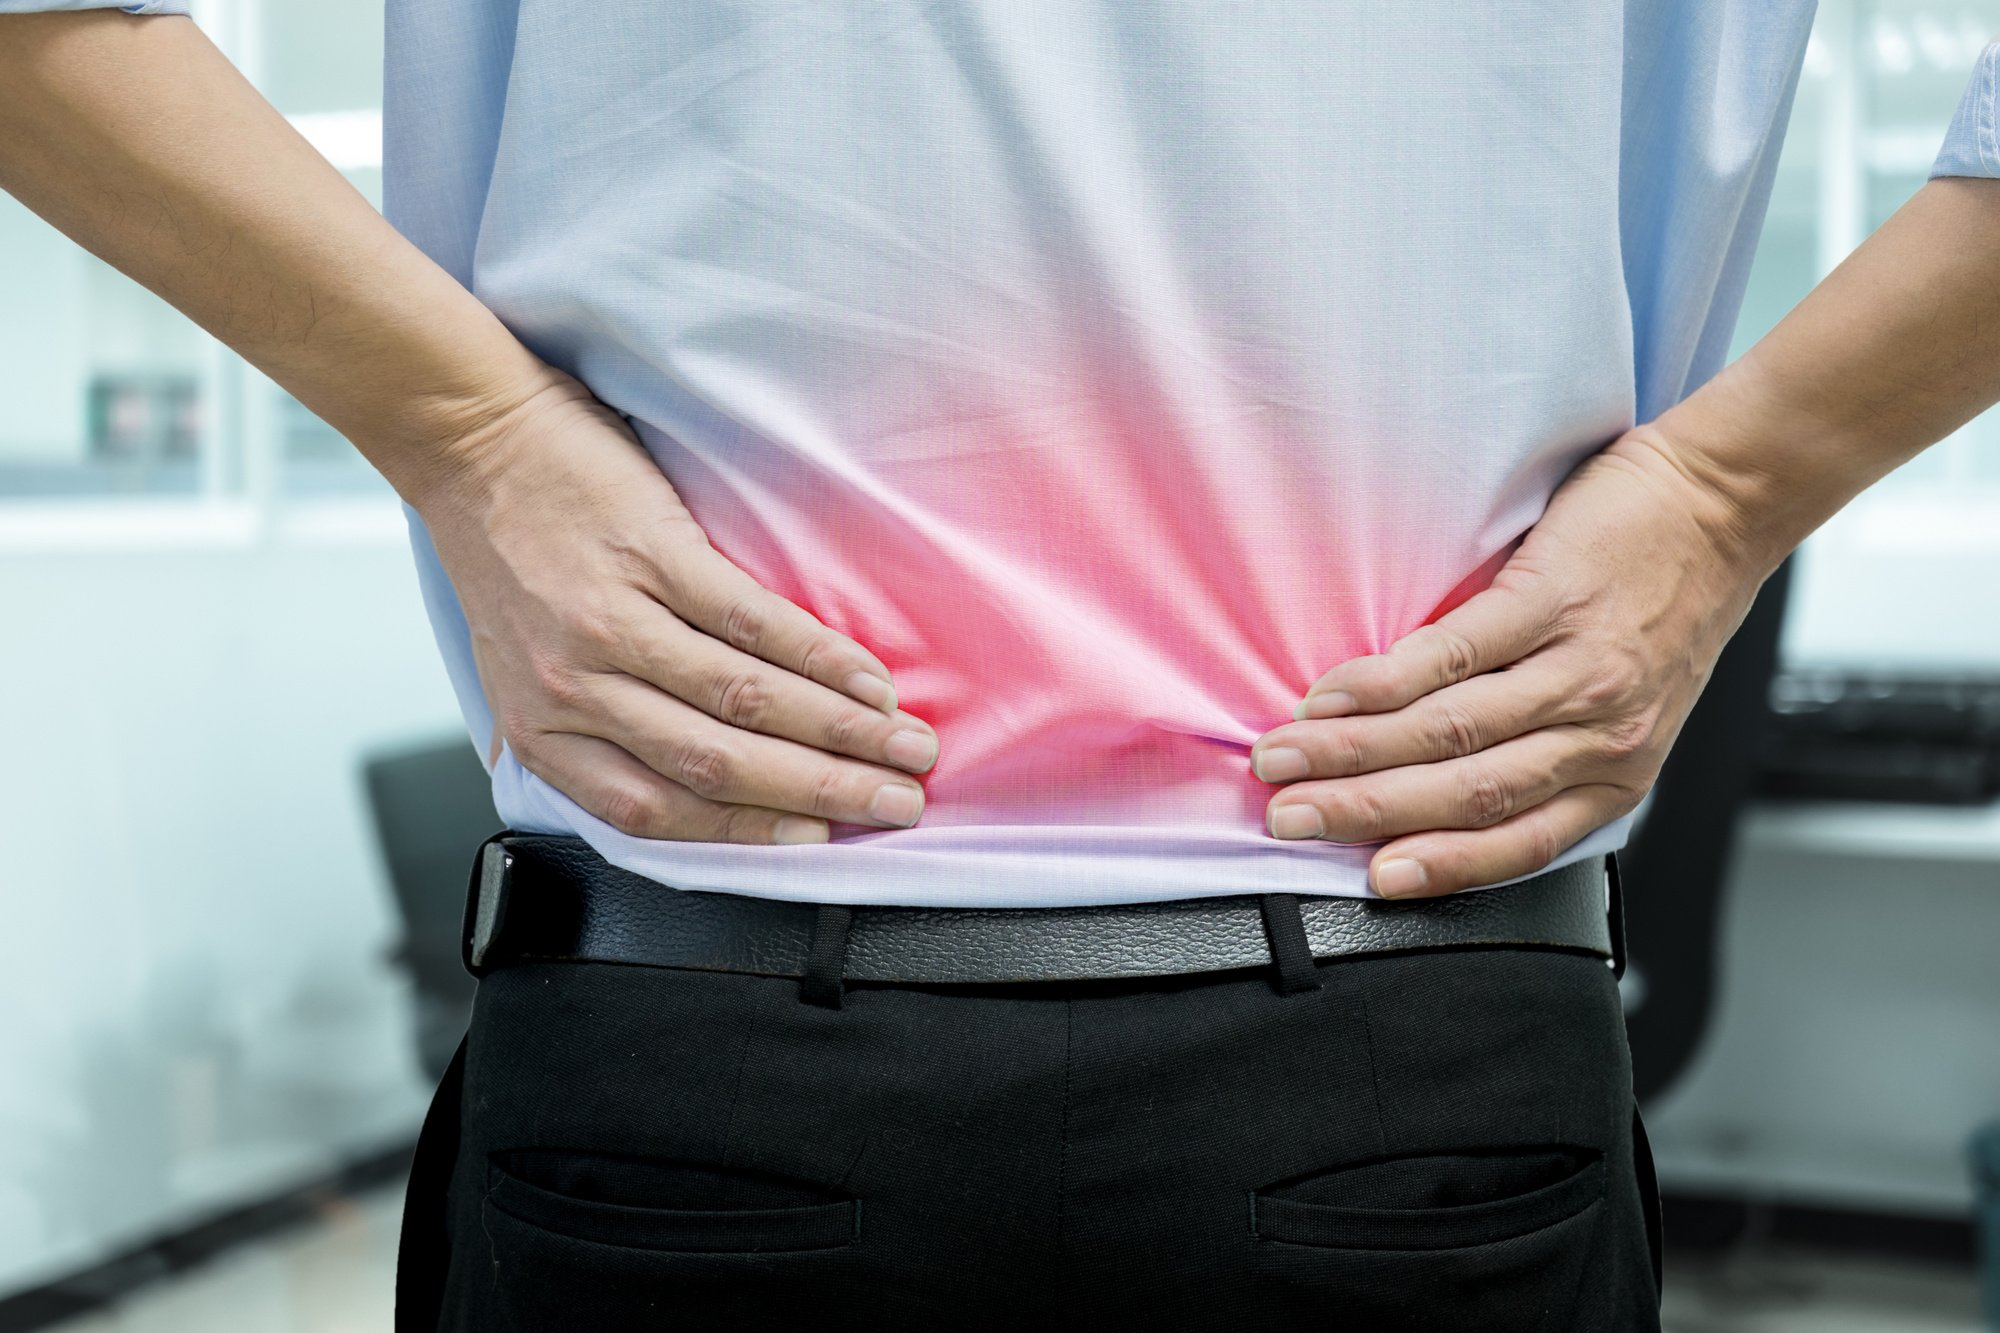 See a Car Crash Injury Lawyer in Baton Rouge for Back Pain from a Car Accident